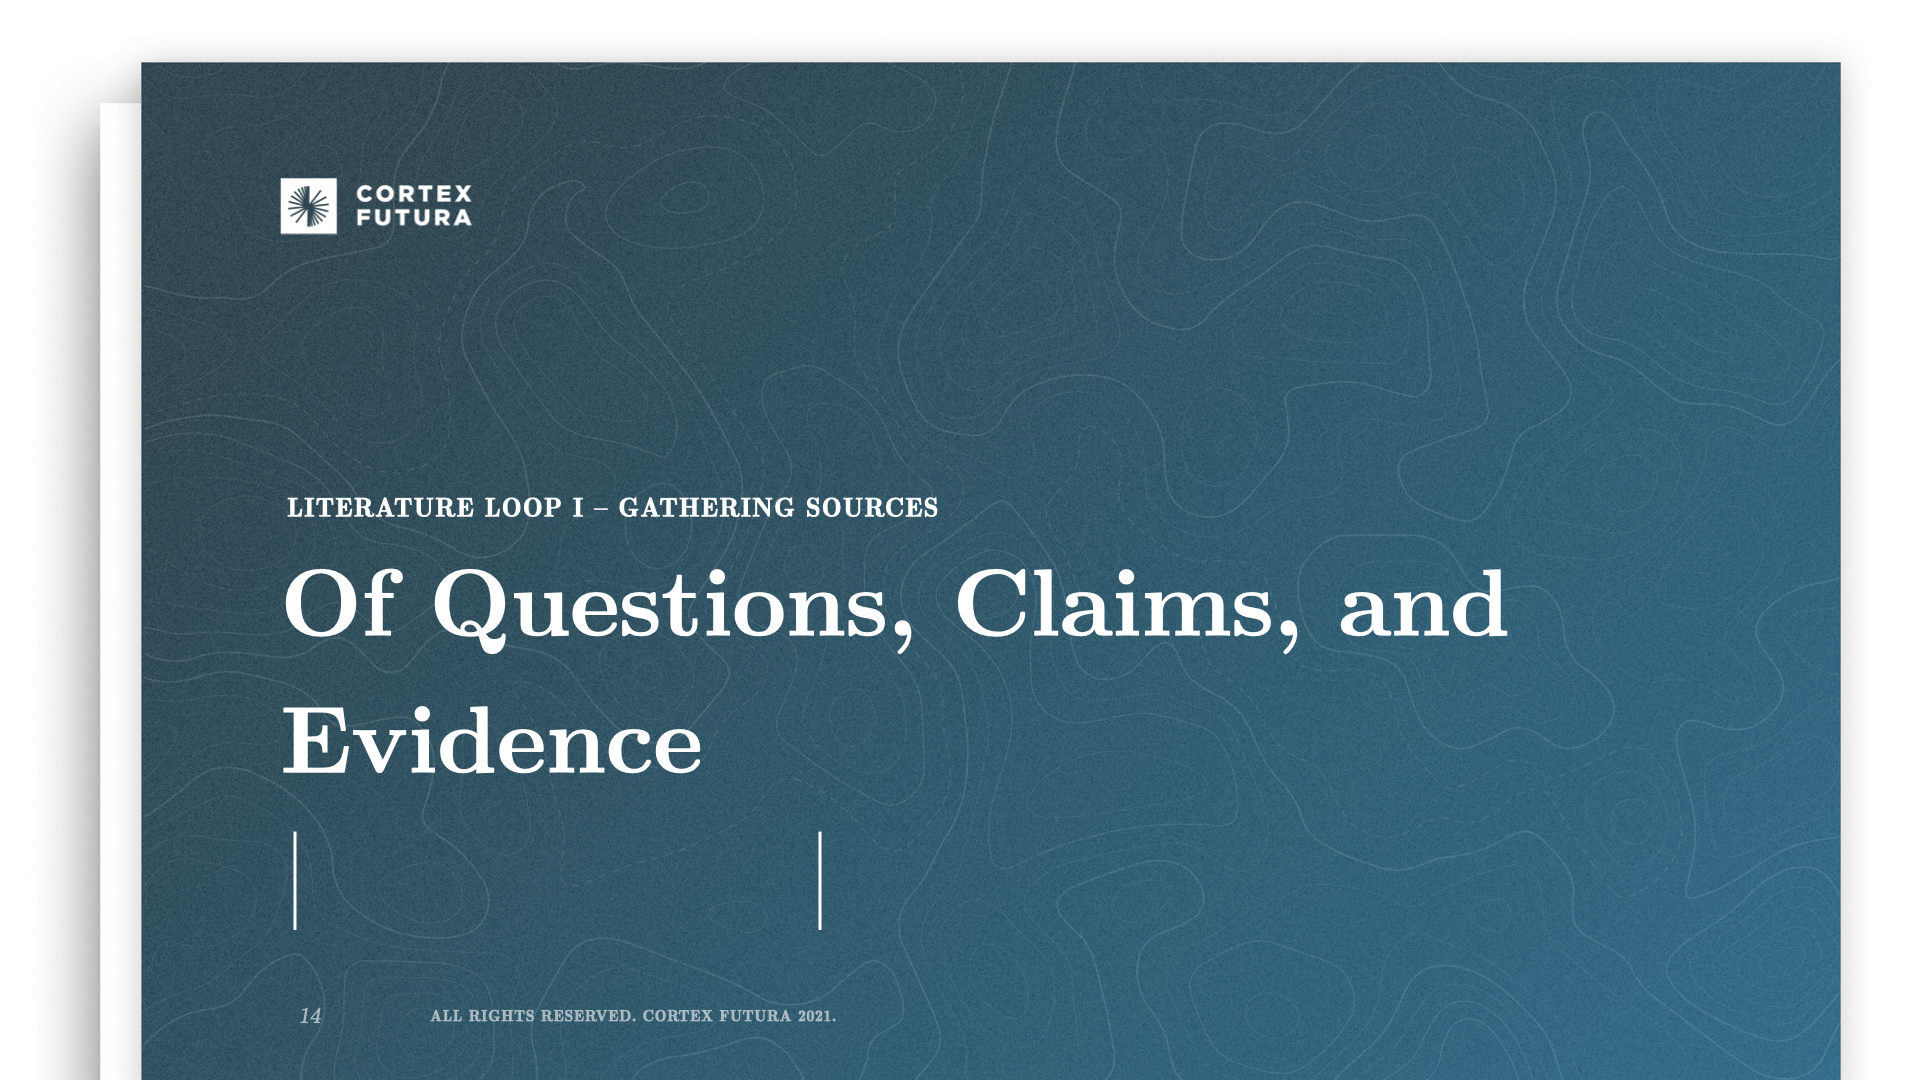 Of Questions, Claims, and Evidence